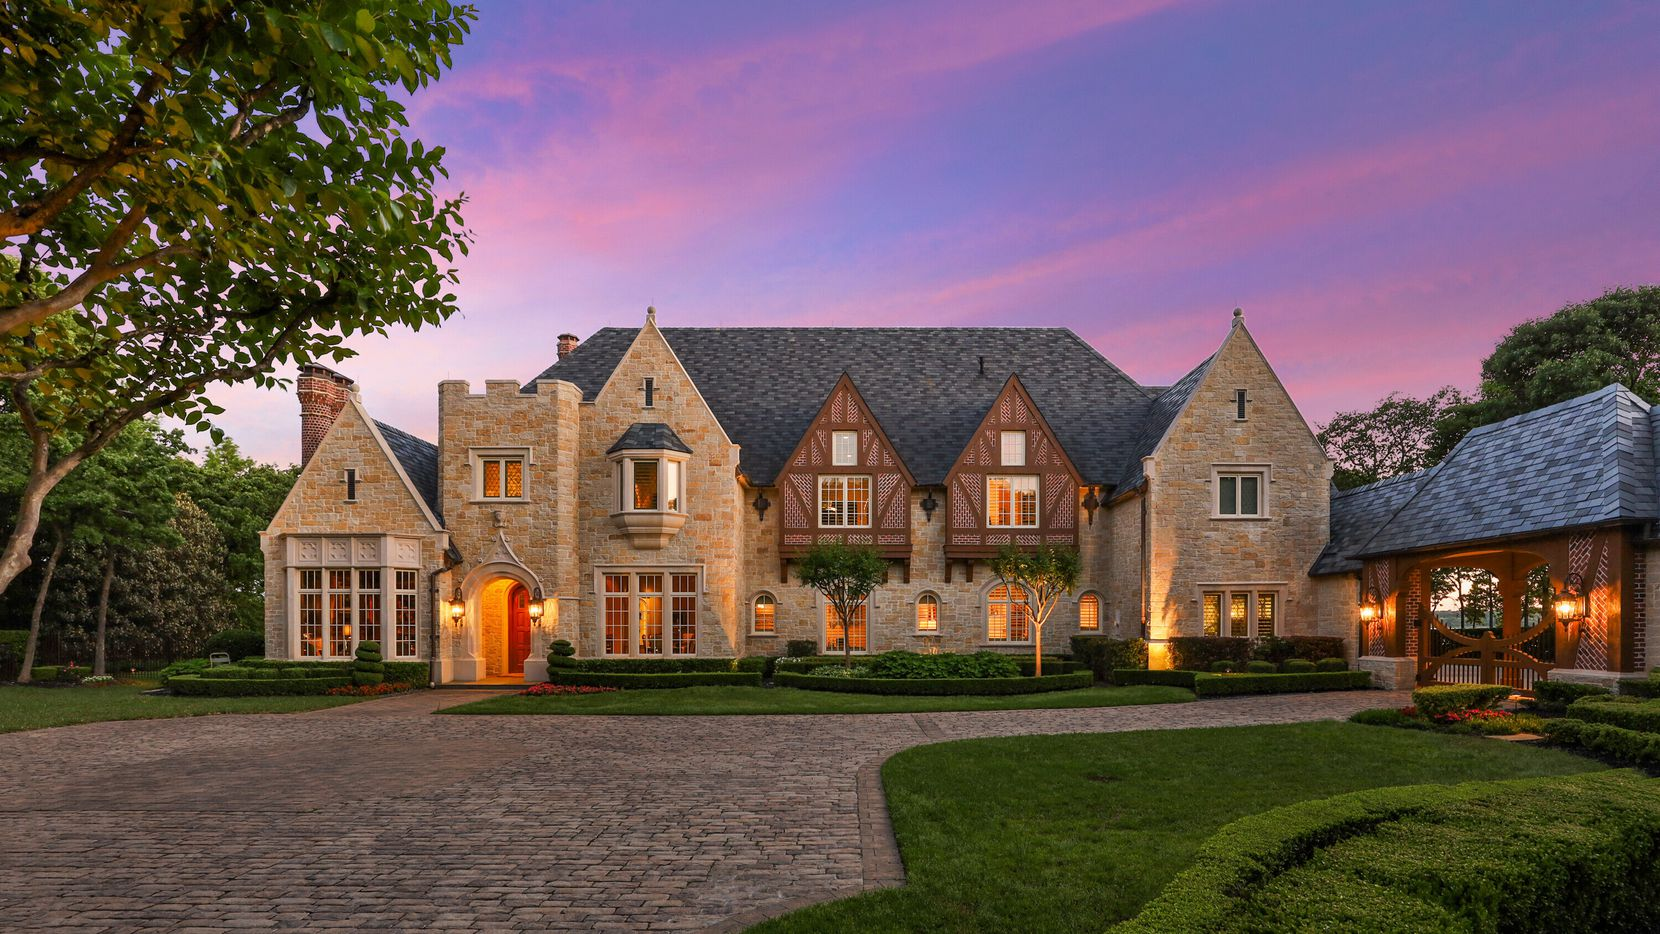 Take a look at the home at 1800 Point de Vue Drive in Flower Mound.